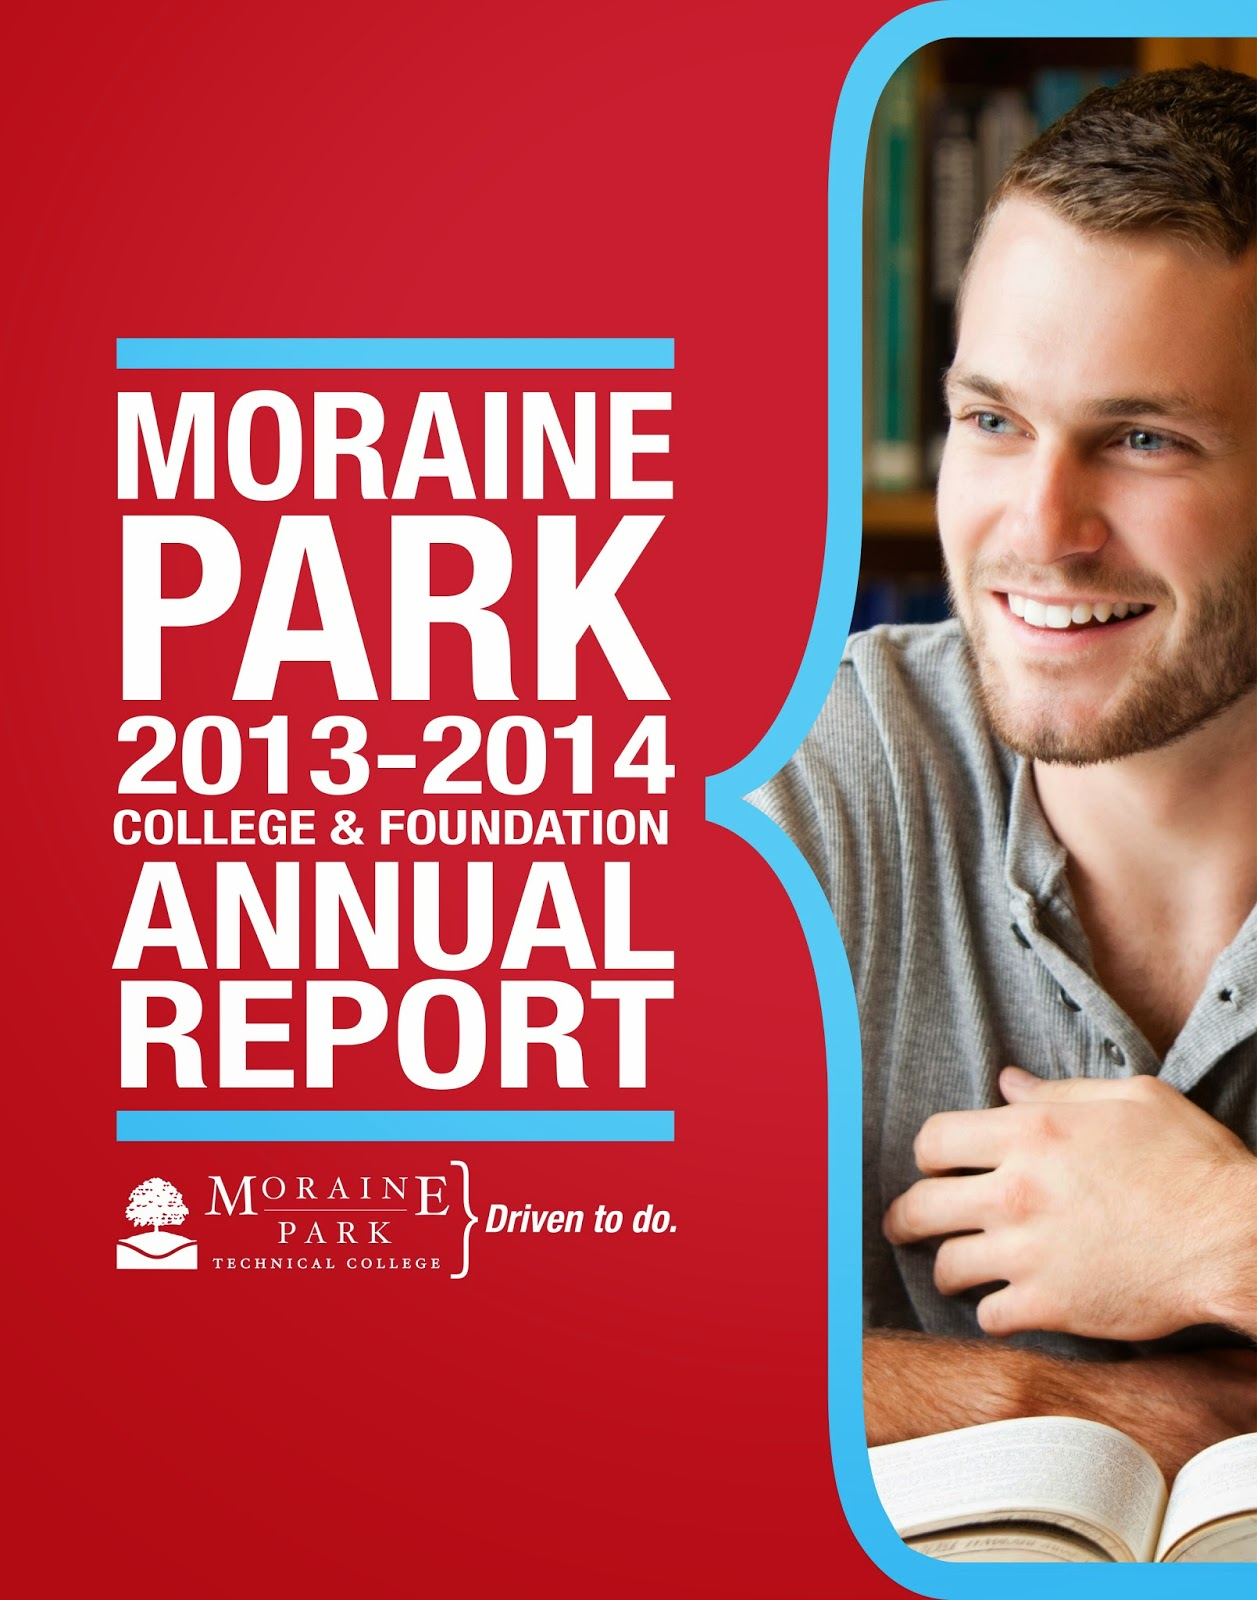 http://morainepark.edu/about-mptc/college-data-and-demographics/annual-report/